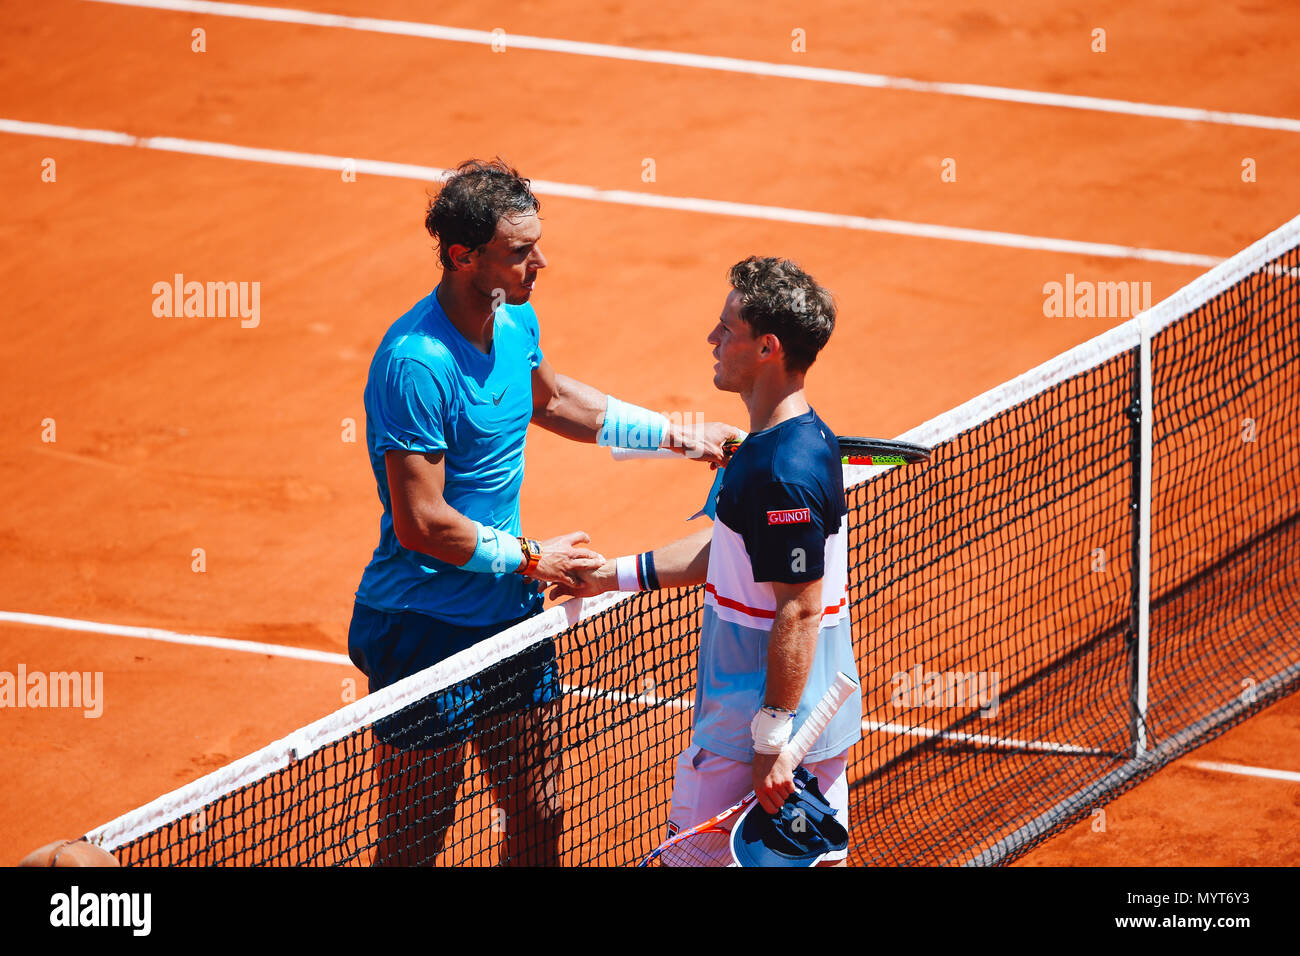 Paris france 7th june 2018 rafael nadal esp diego schwartzman rafael nadal esp diego schwartzman arg tennis rafael nadal of spain and diego schwartzman of argentina greet each other after the mens singles m4hsunfo